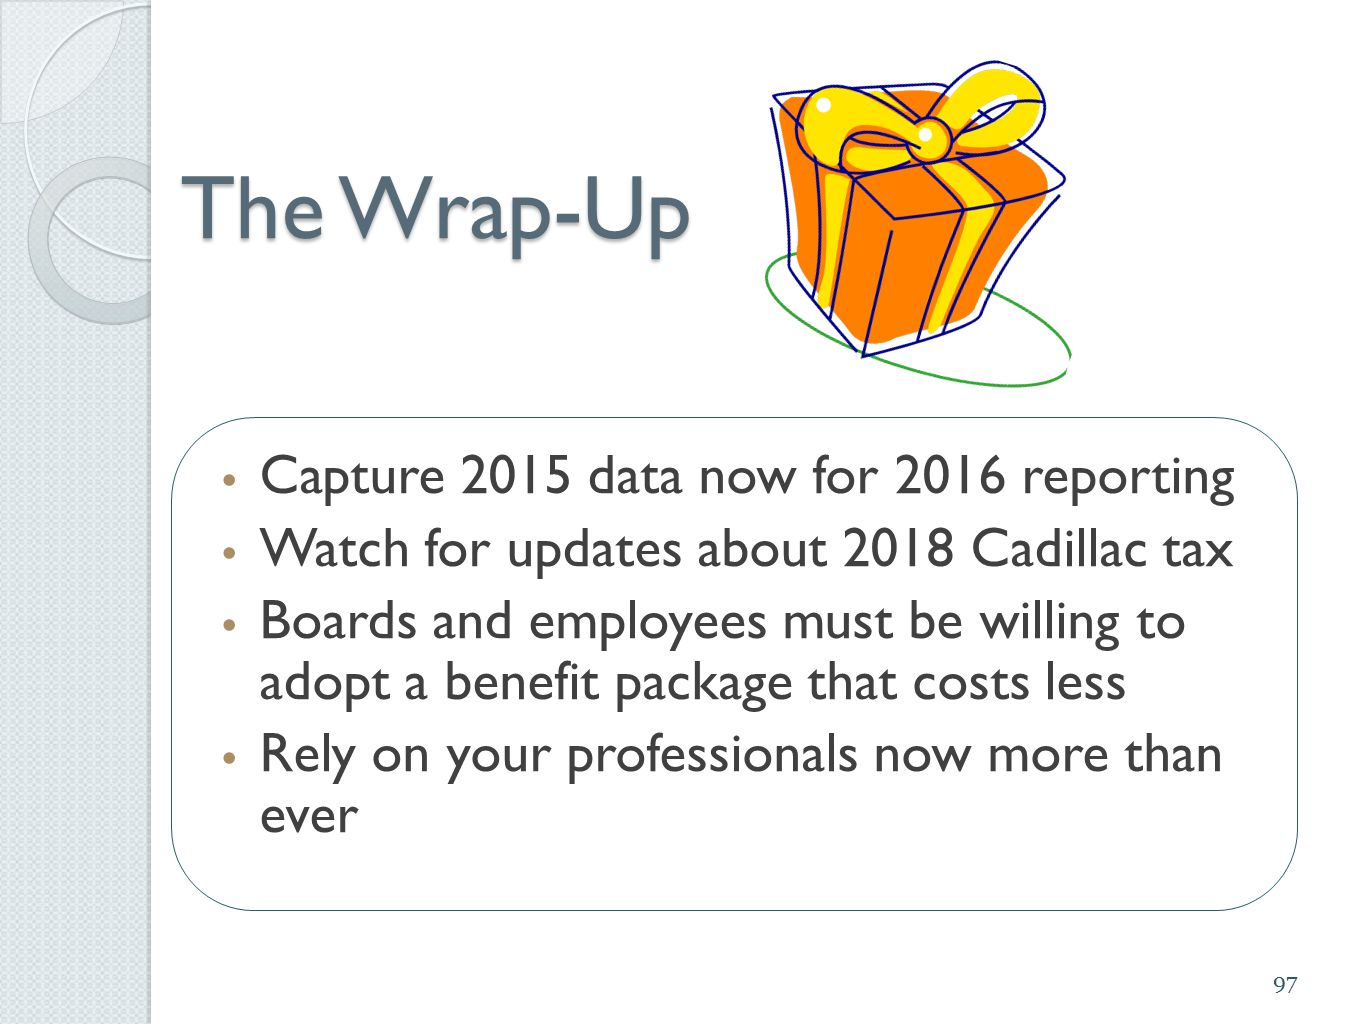 The Wrap-Up Capture 2015 data now for 2016 reporting Watch for updates about 2018 Cadillac tax Boards and employees must be willing to adopt a benefit